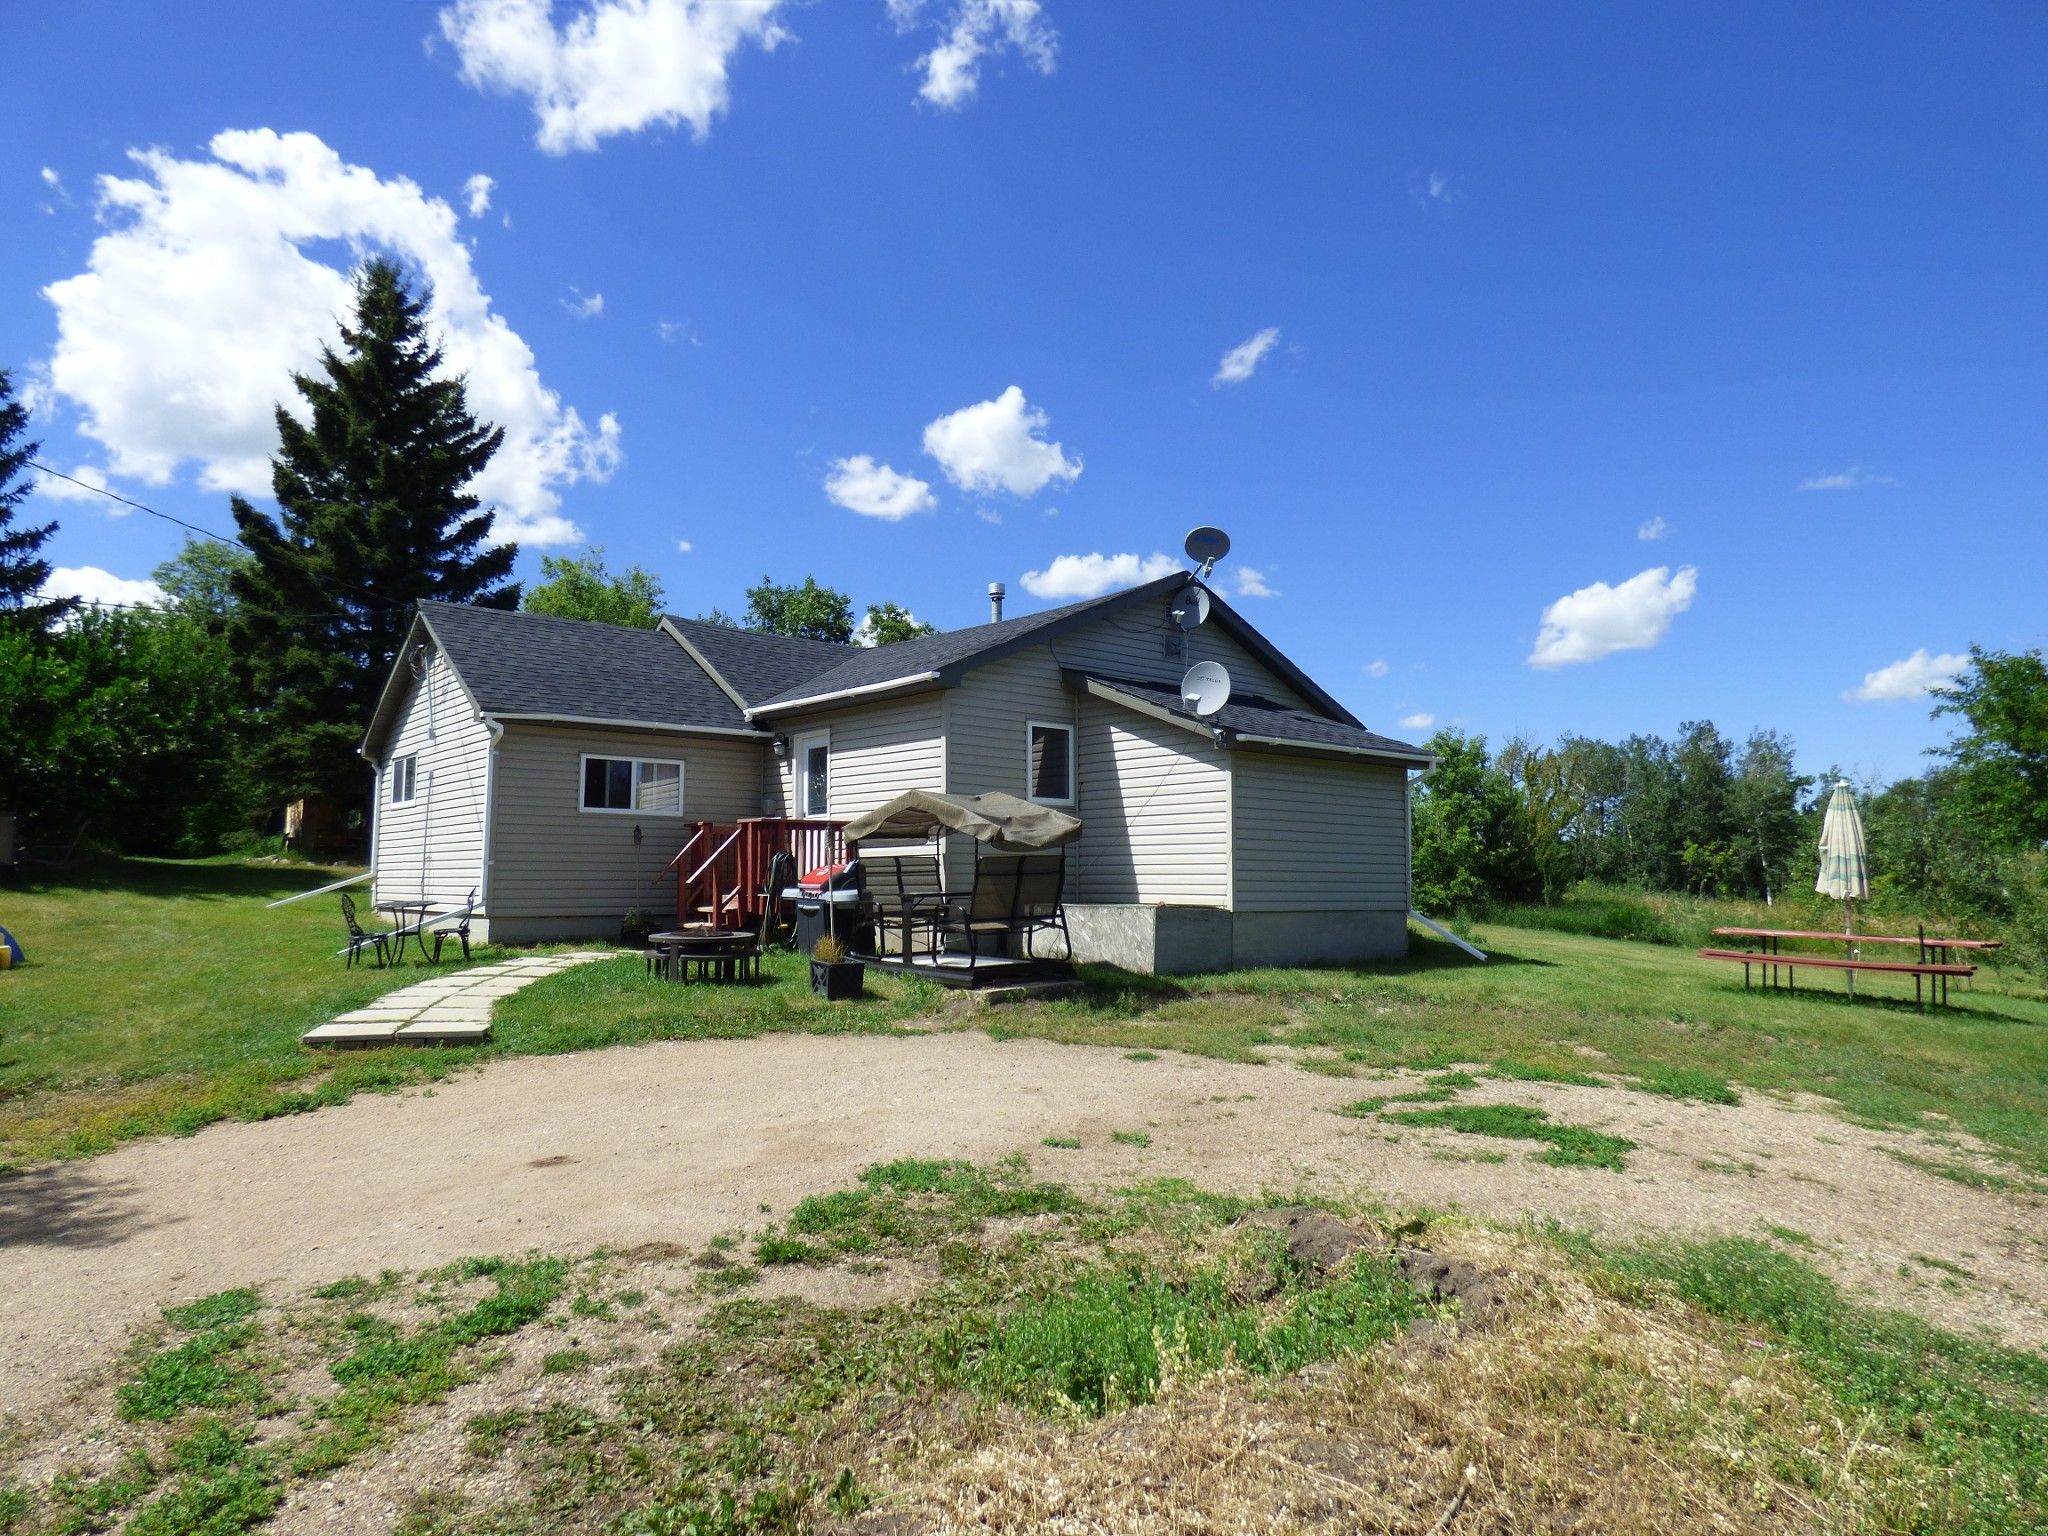 Main Photo: NE 6-46-9 W4: Irma House for sale (MD of Wainwright)  : MLS®# A1076815